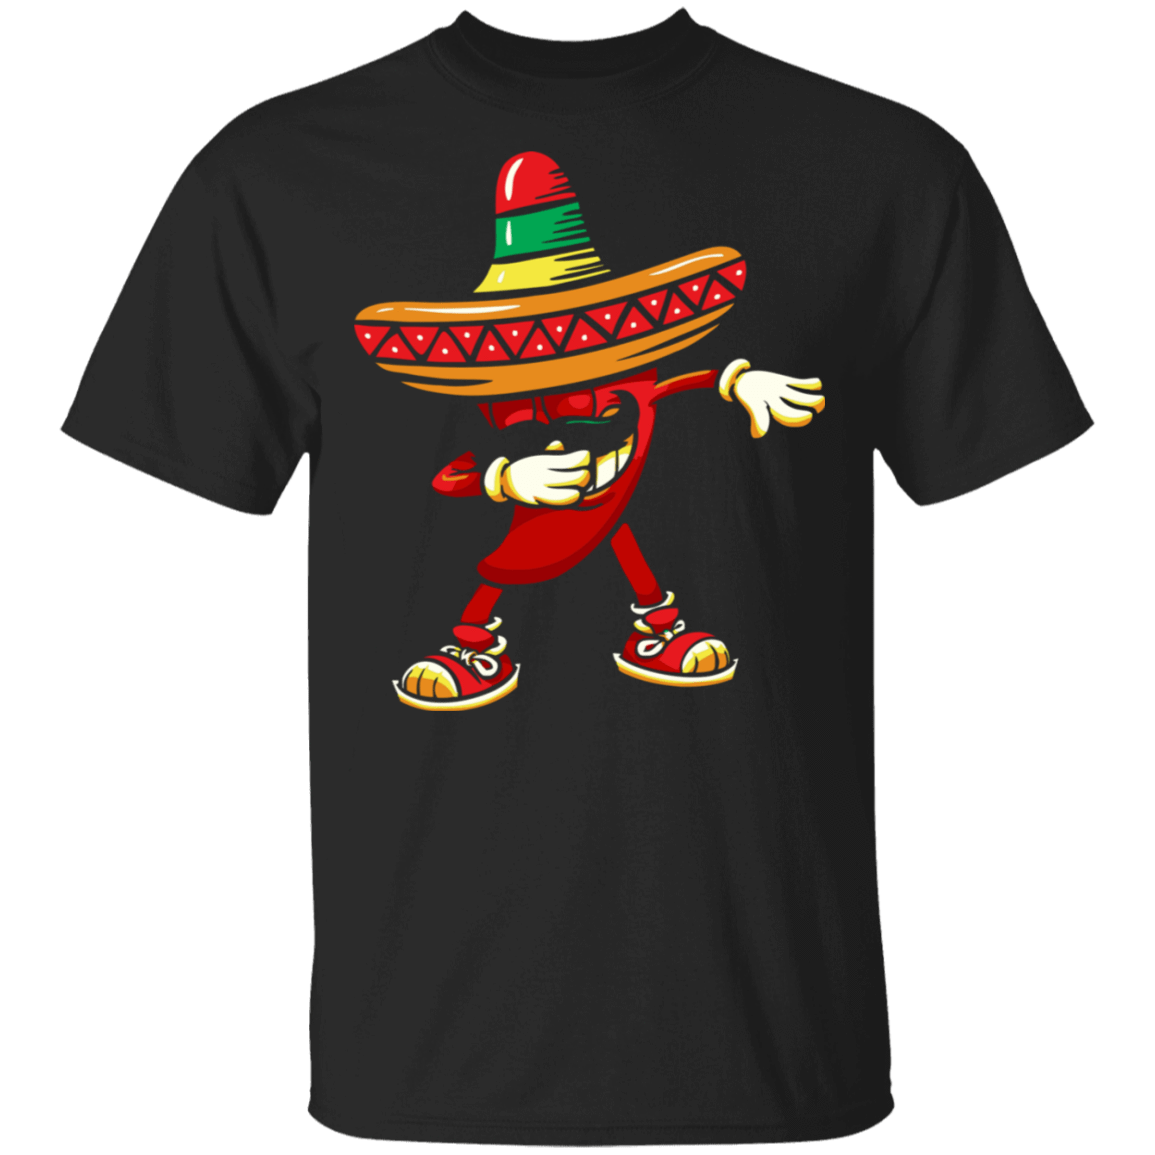 Drinco Party Shirt Tequila Fiesta Food Costume Tee T-Shirts, Hoodies, Tank 22-113-79310264-252 - Tee Ript